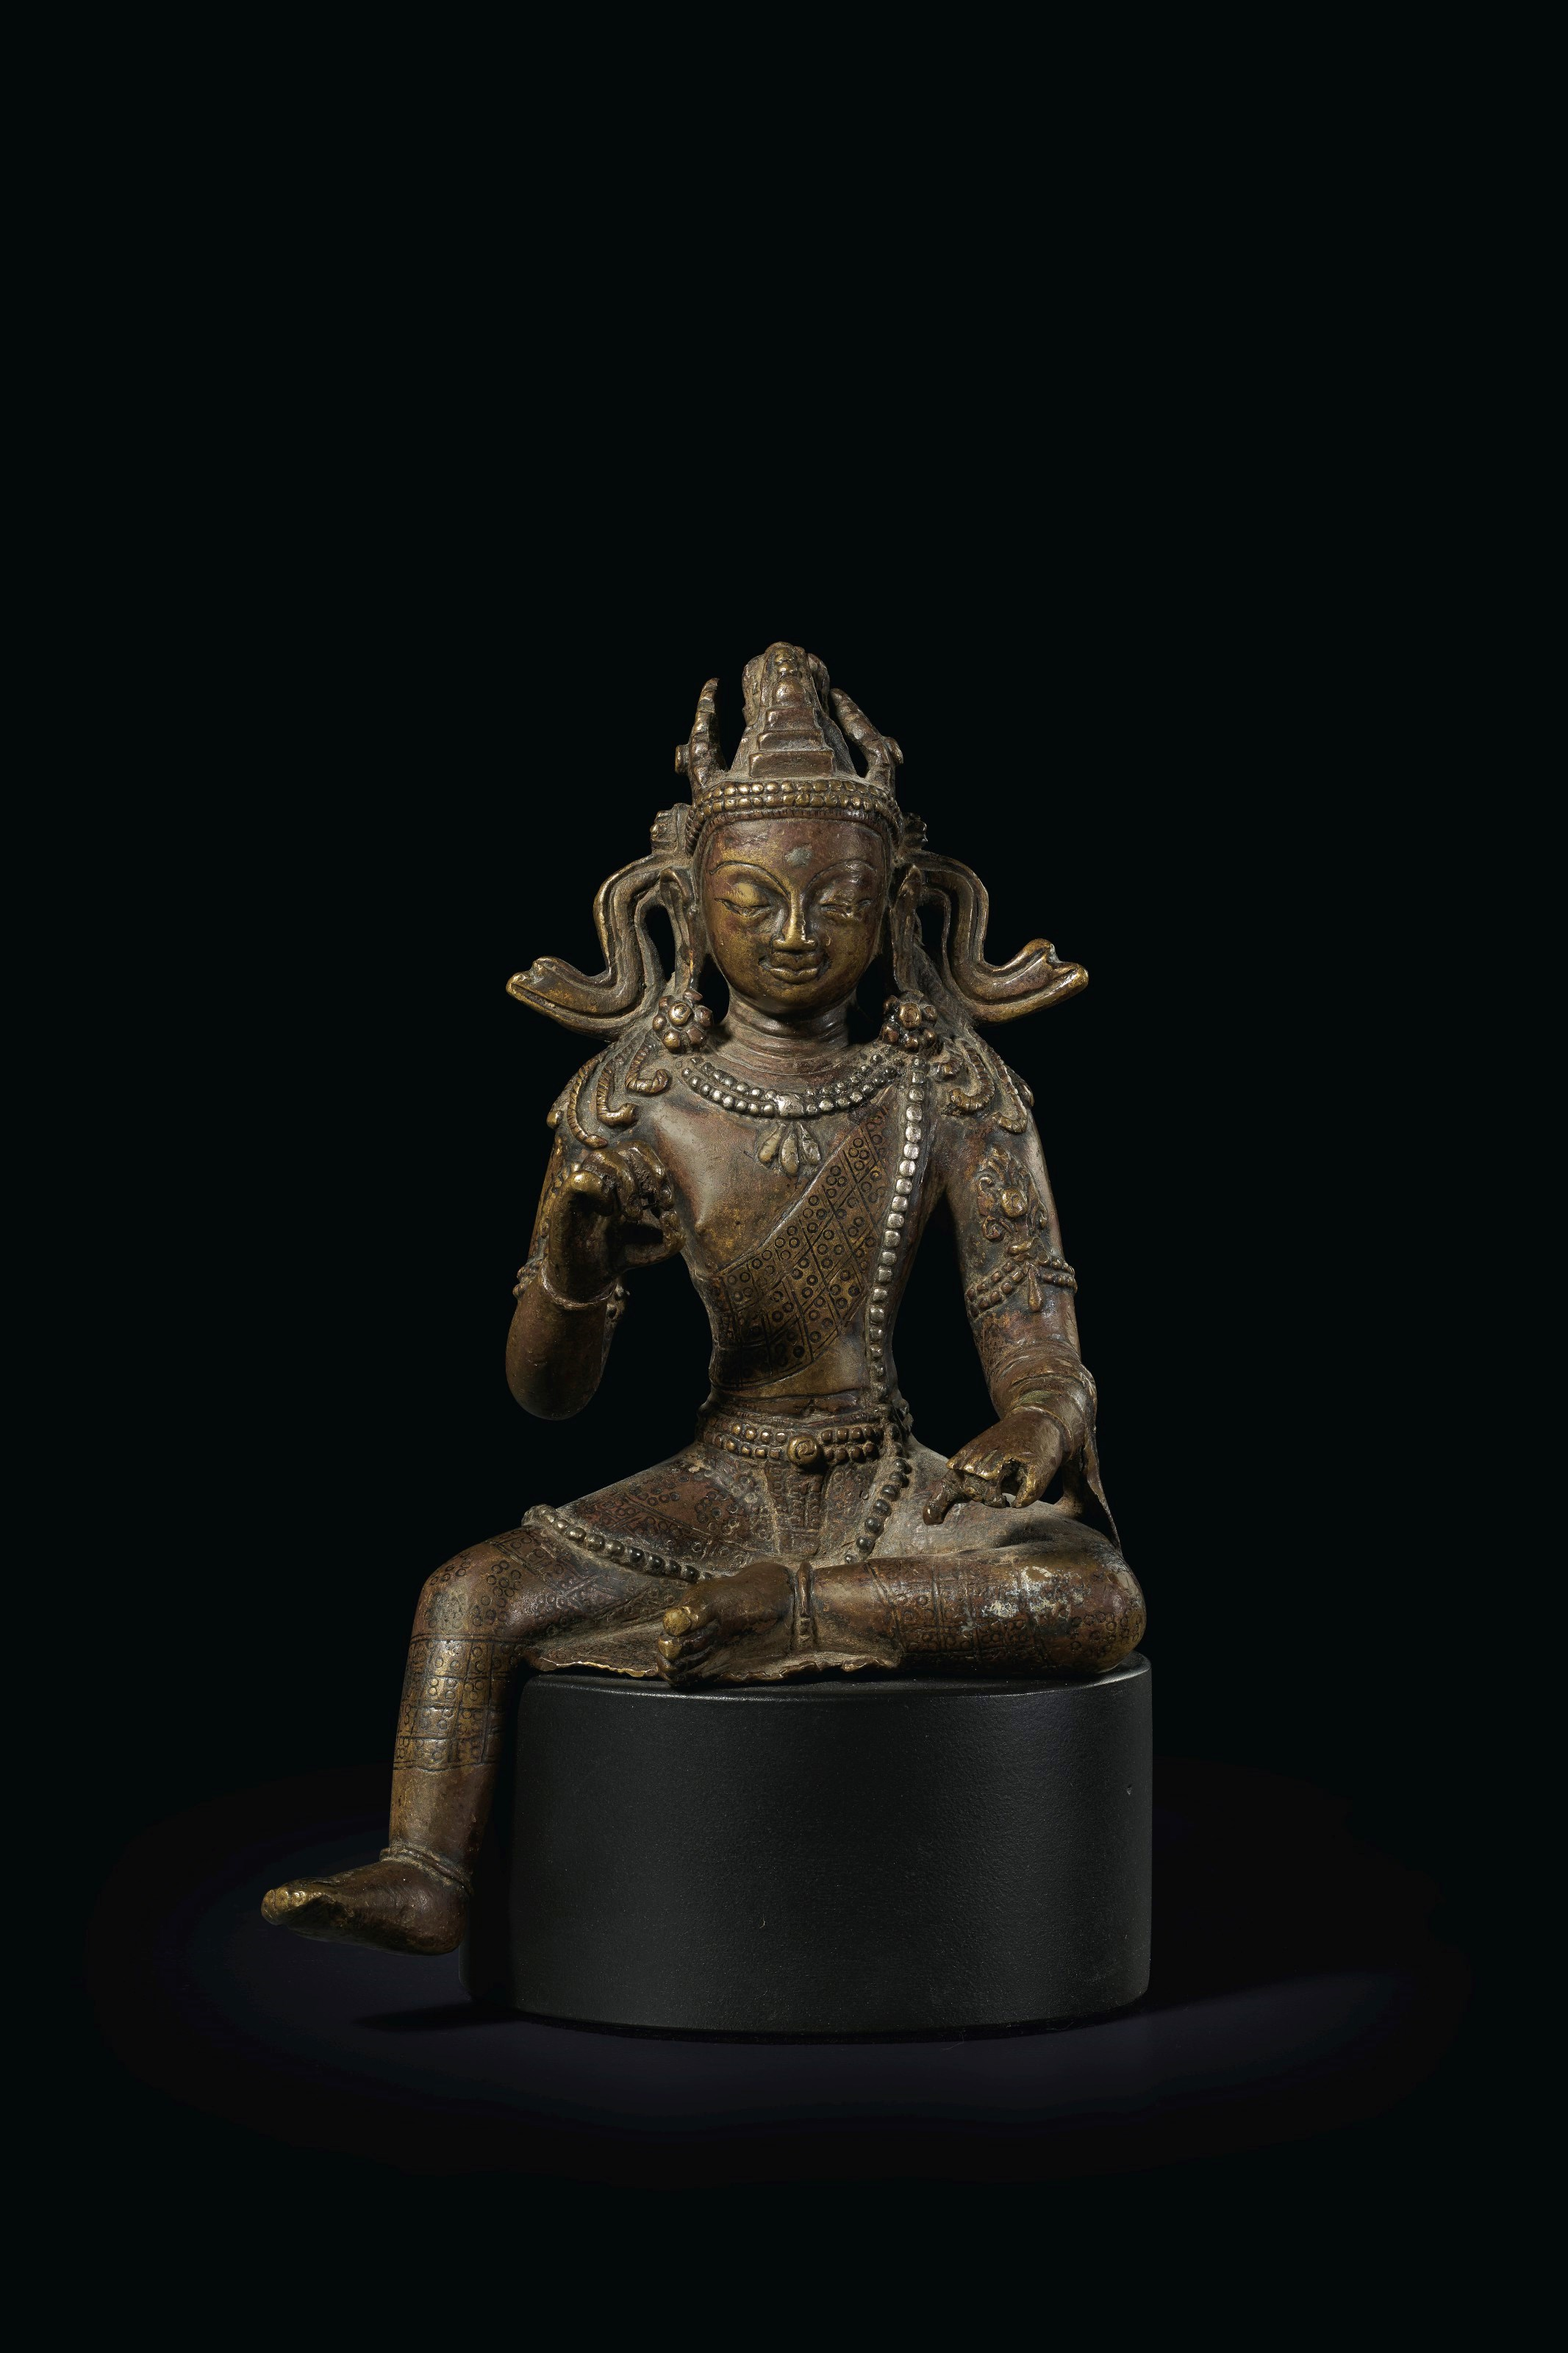 A SILVER-INLAID BRONZE FIGURE